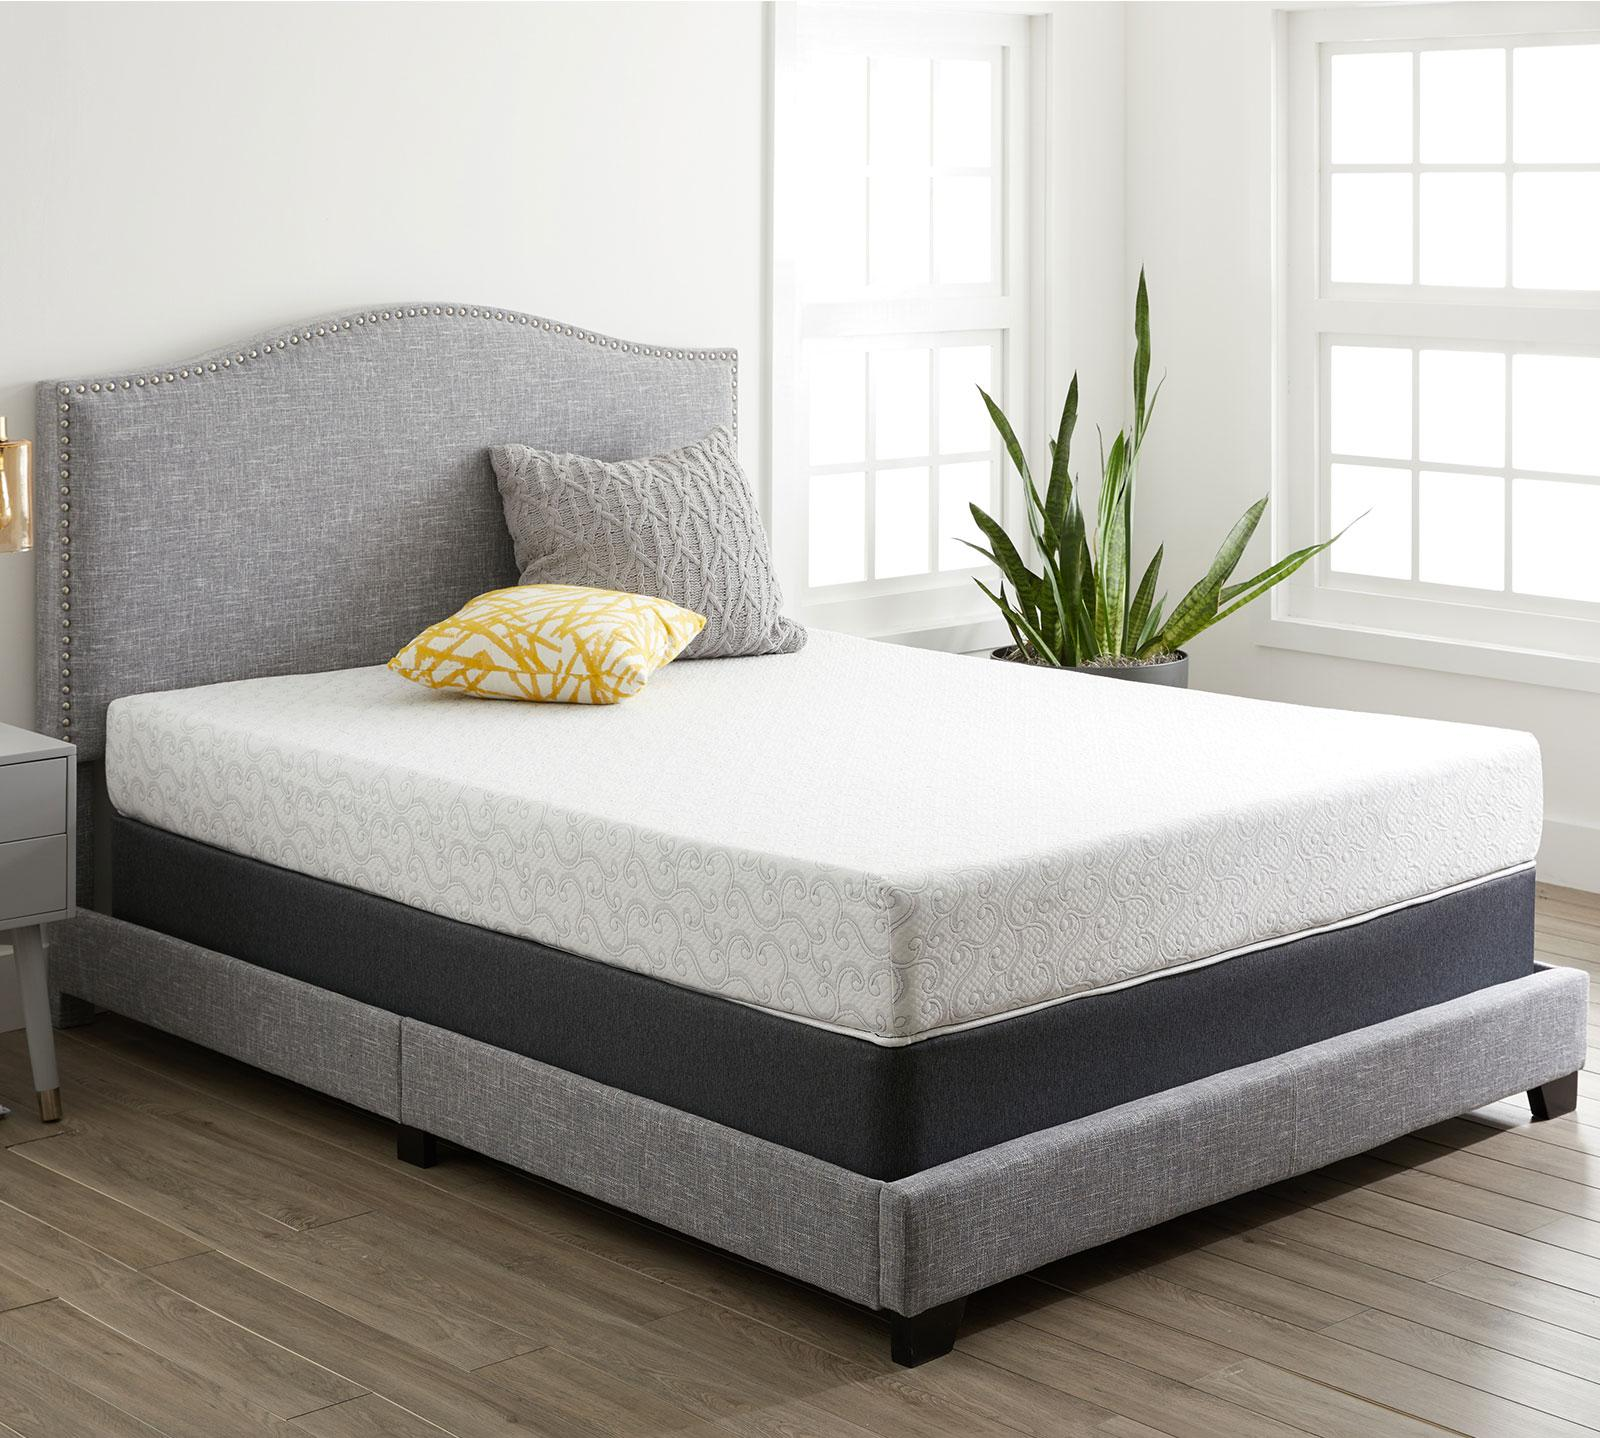 Alesbury 8 Inch Plush Memory Foam Mattress